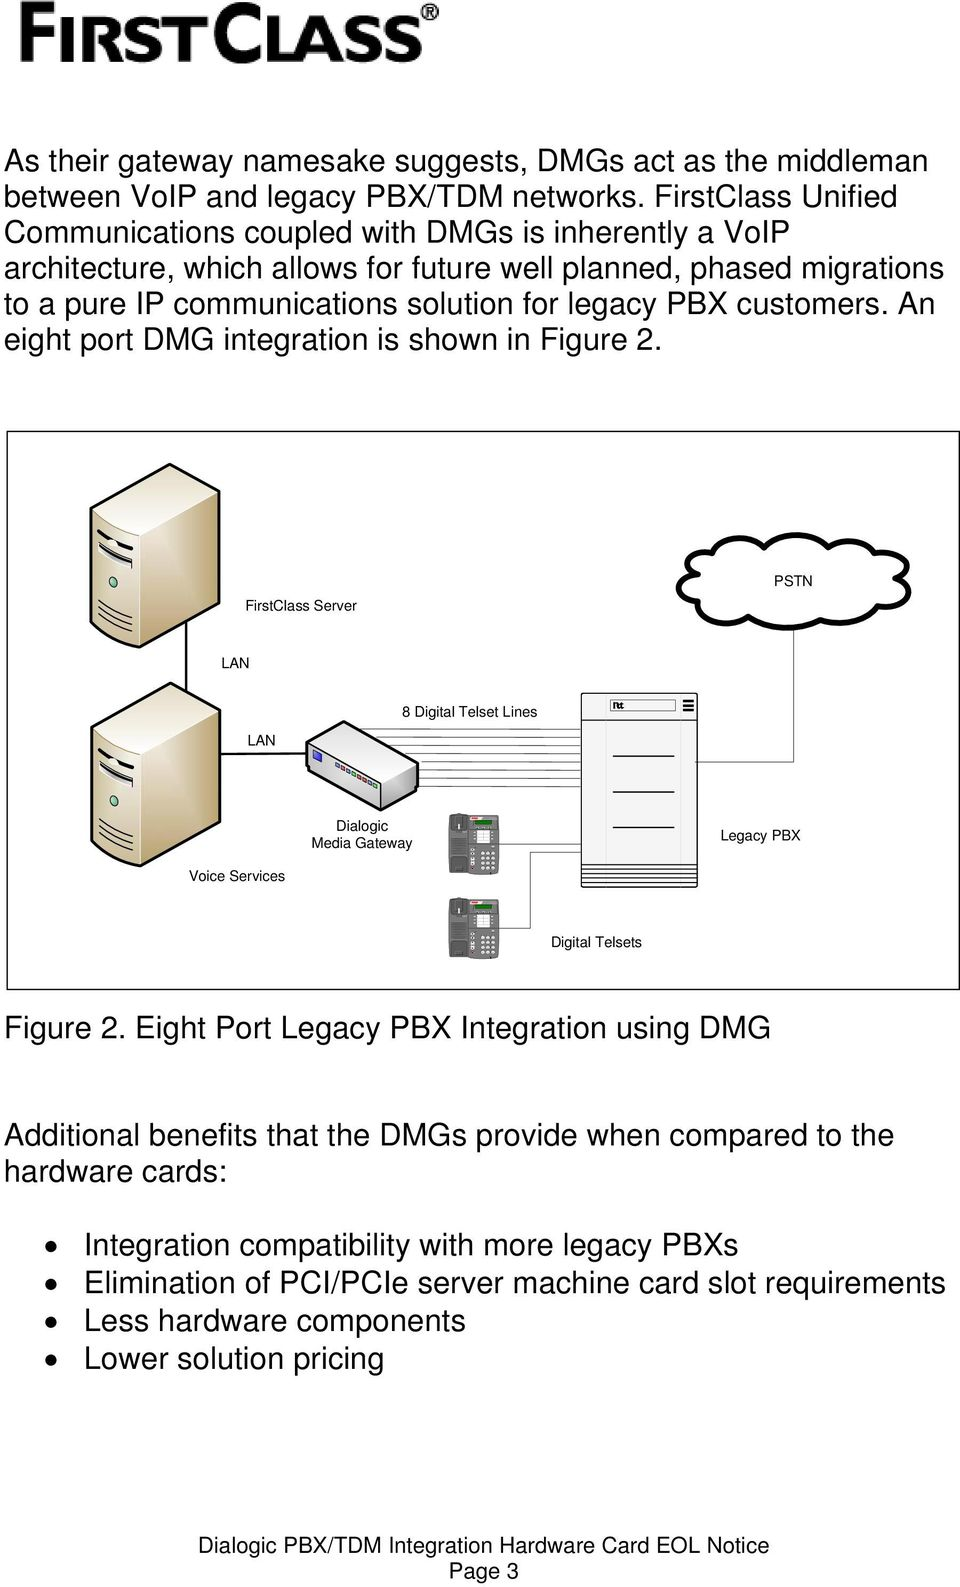 middleman between VoIP and legacy PBX/TDM networks.